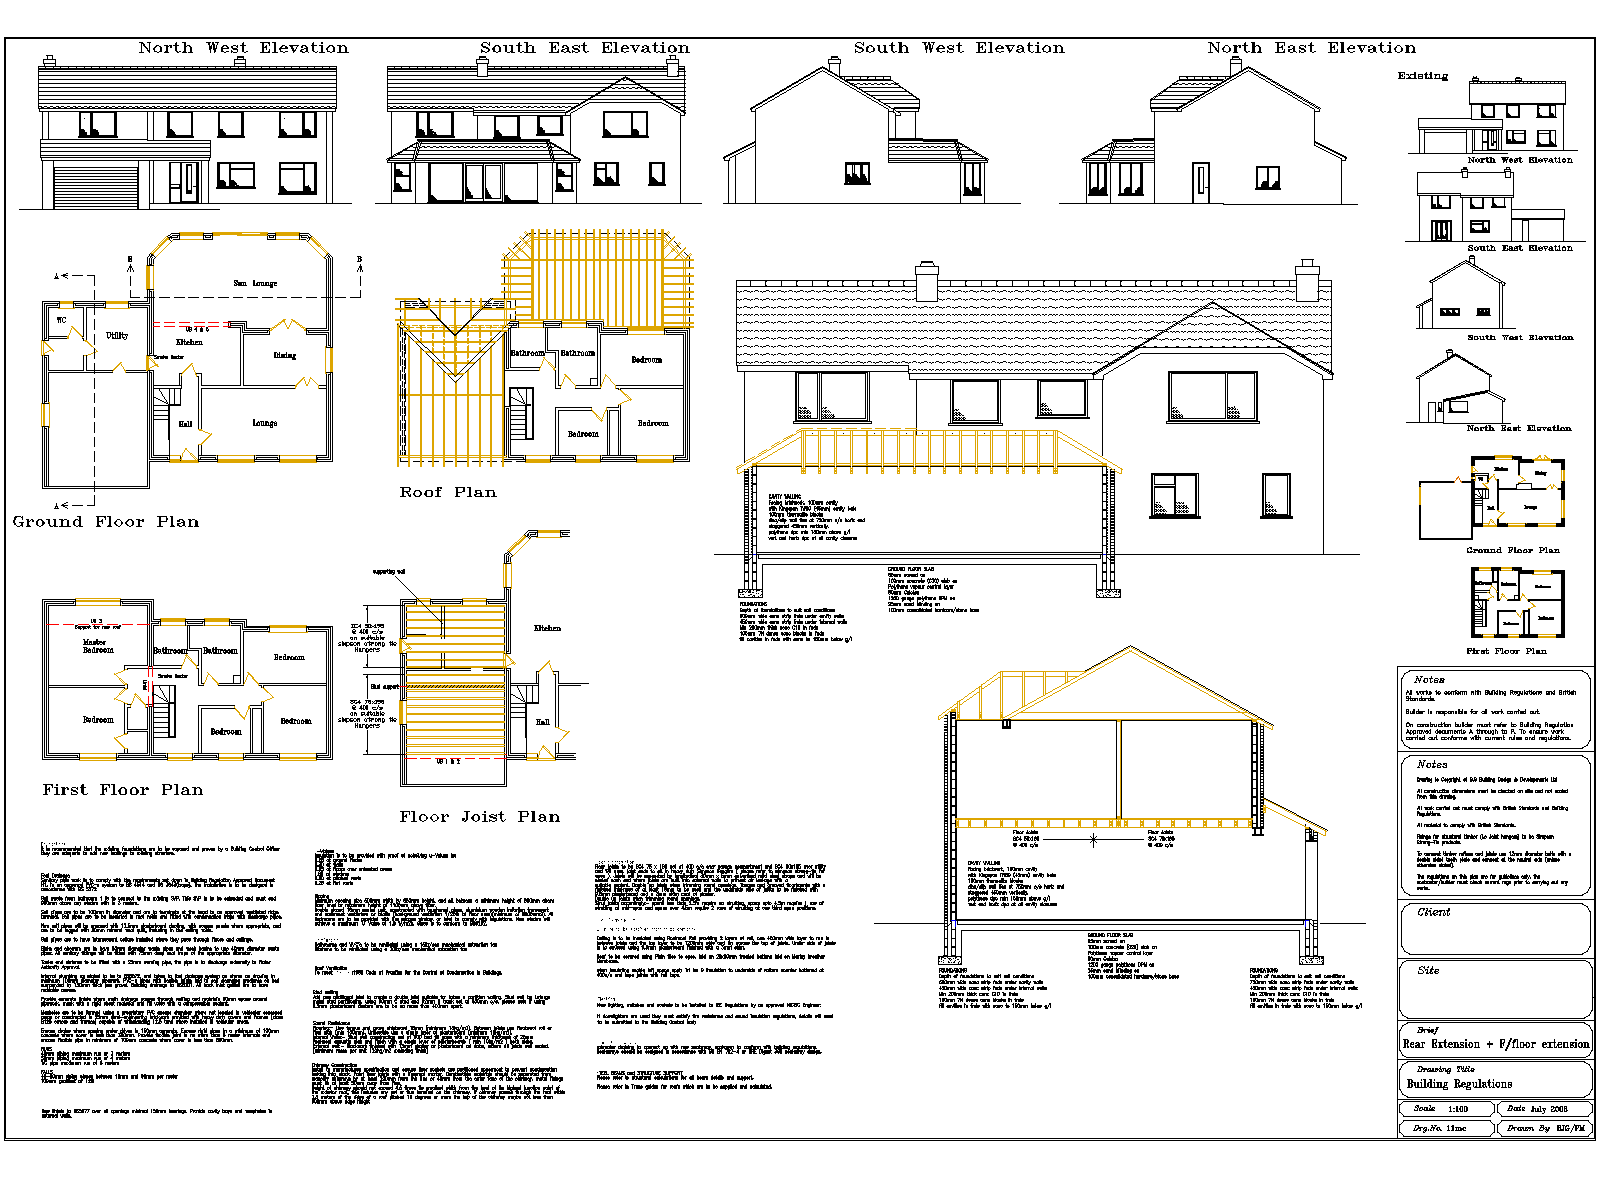 Single storey extension and first storey extension over garage for planning and building regulations.